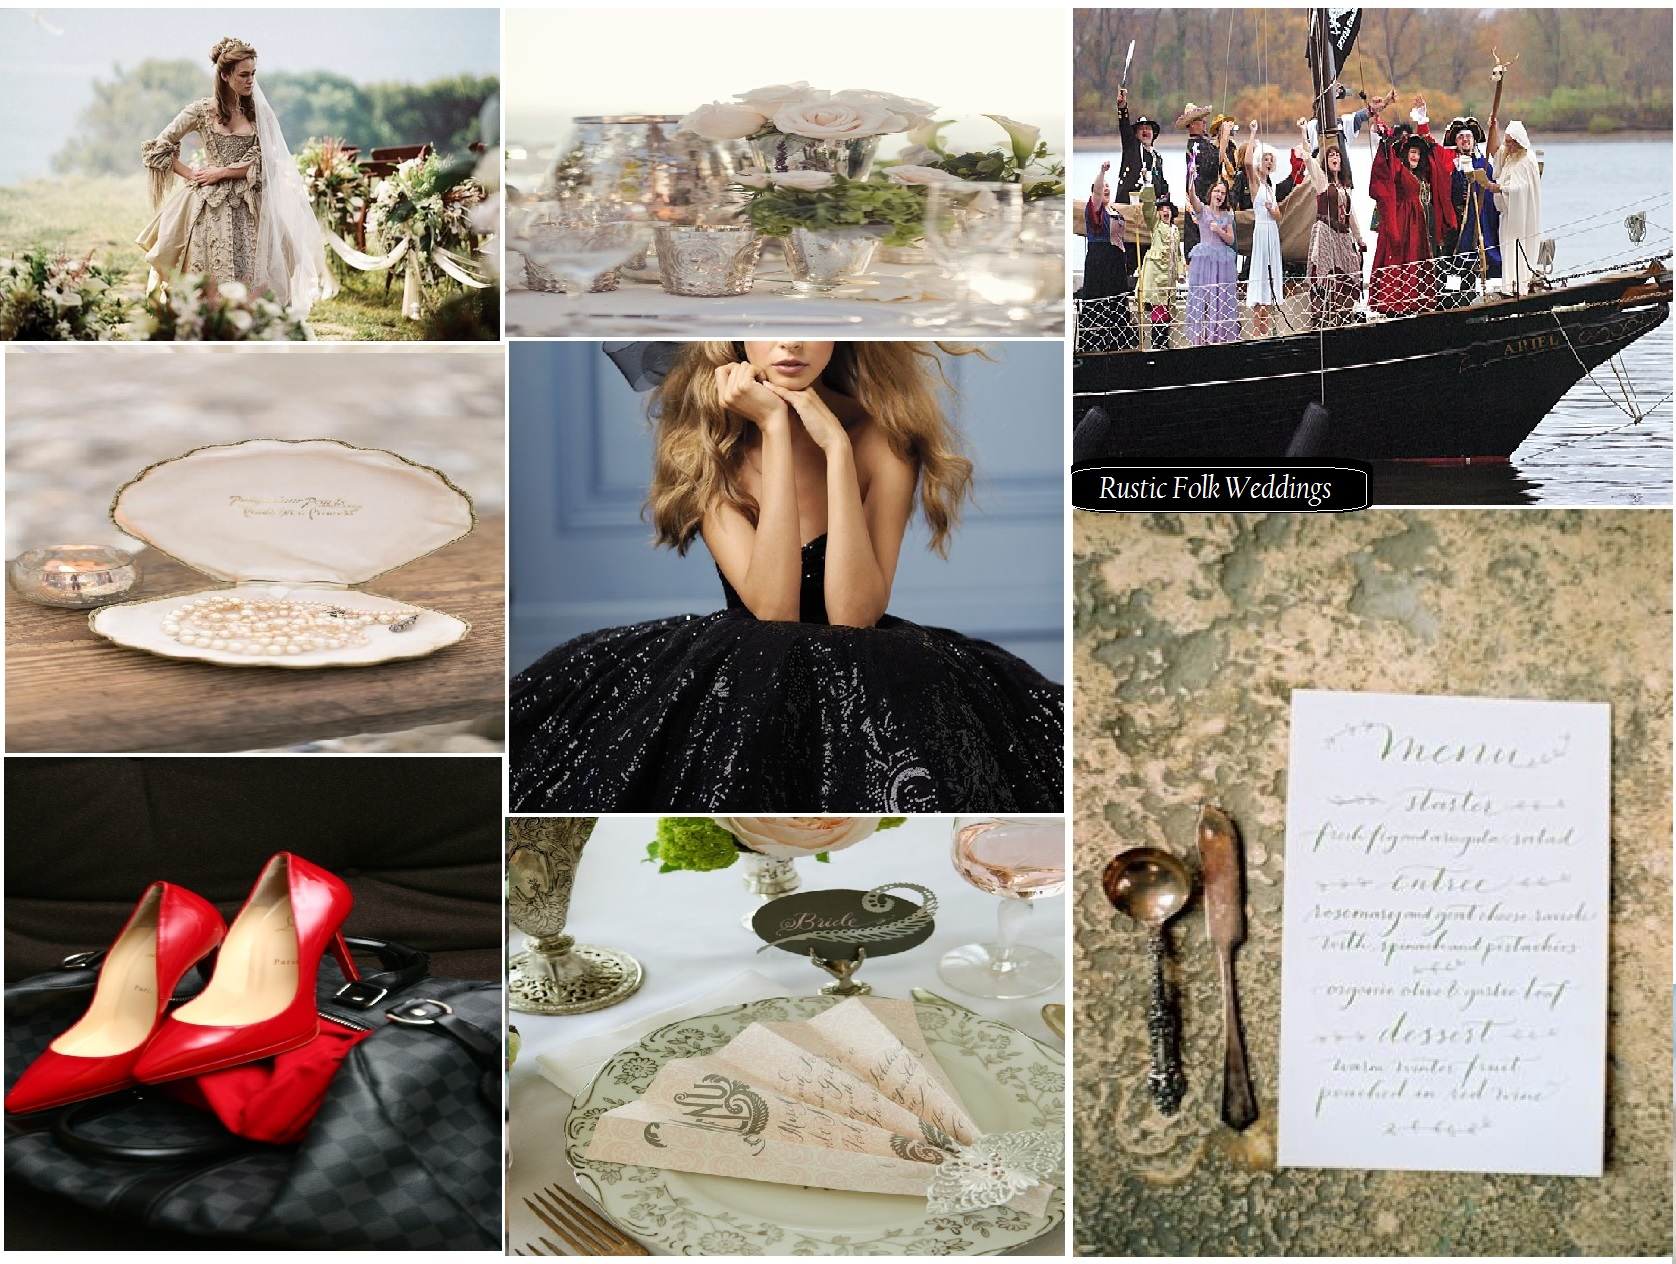 Pirates of the Caribbean Wedding Inspiration Board